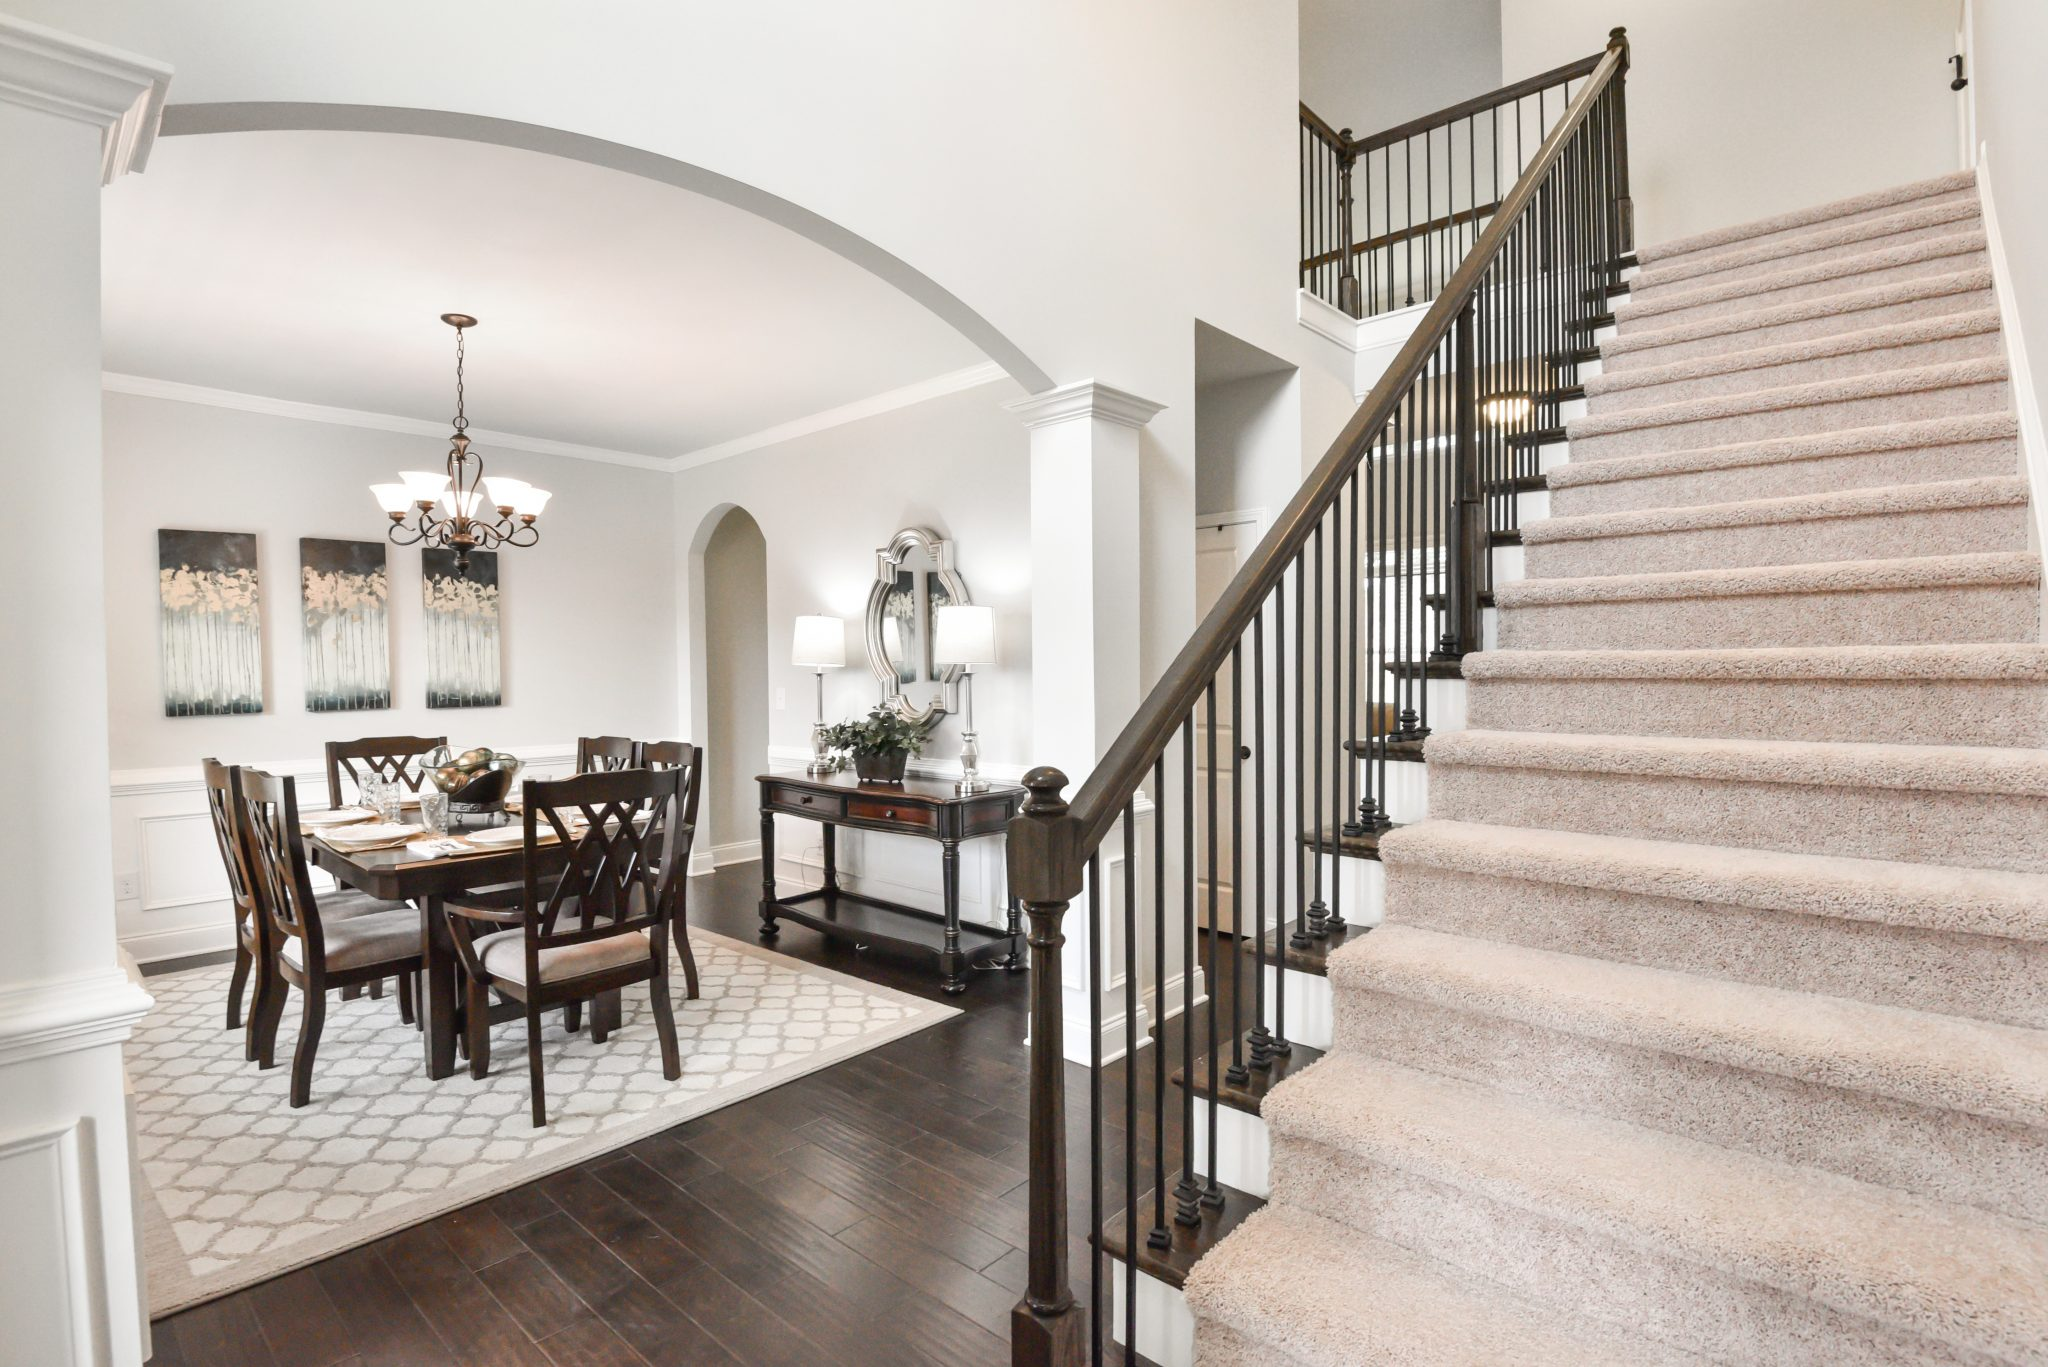 Own your new home faster with Kerley Family Homes iBuyer program